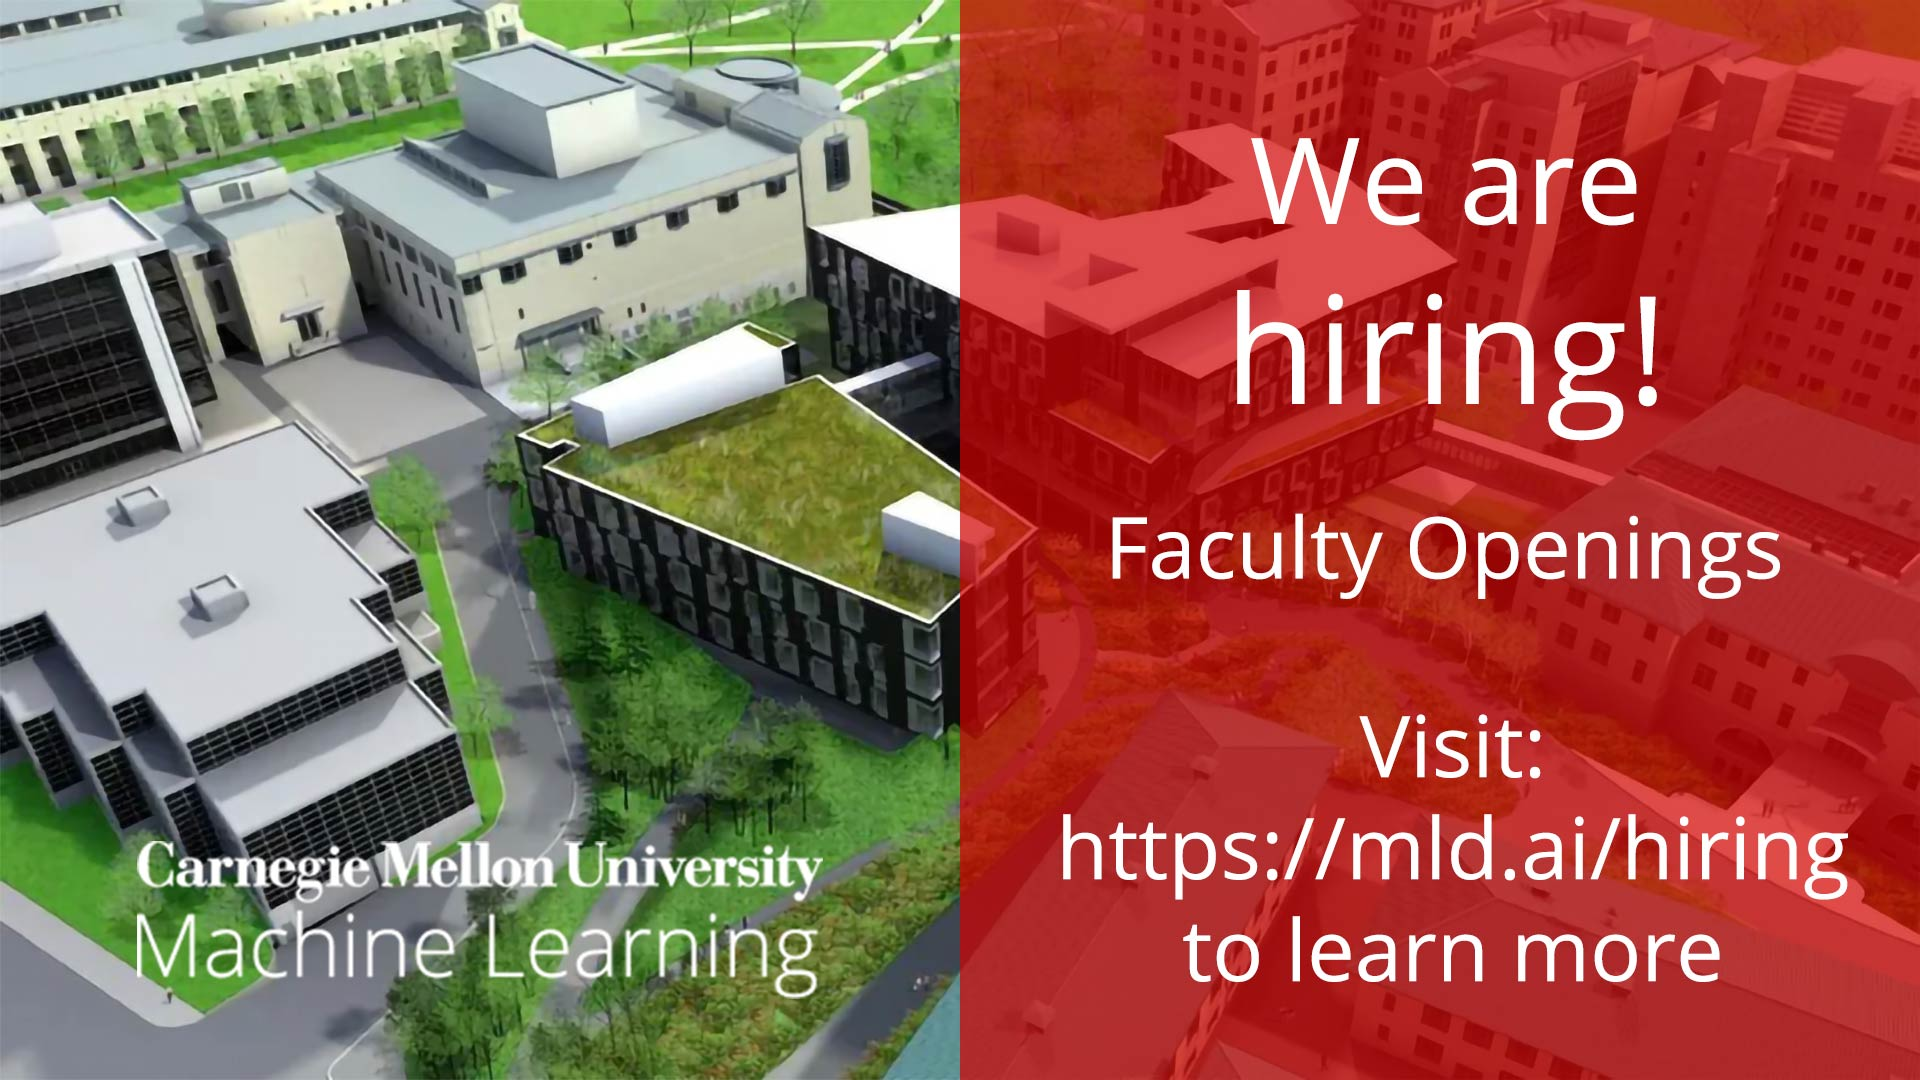 Faculty Openings in the Machine Learning Department